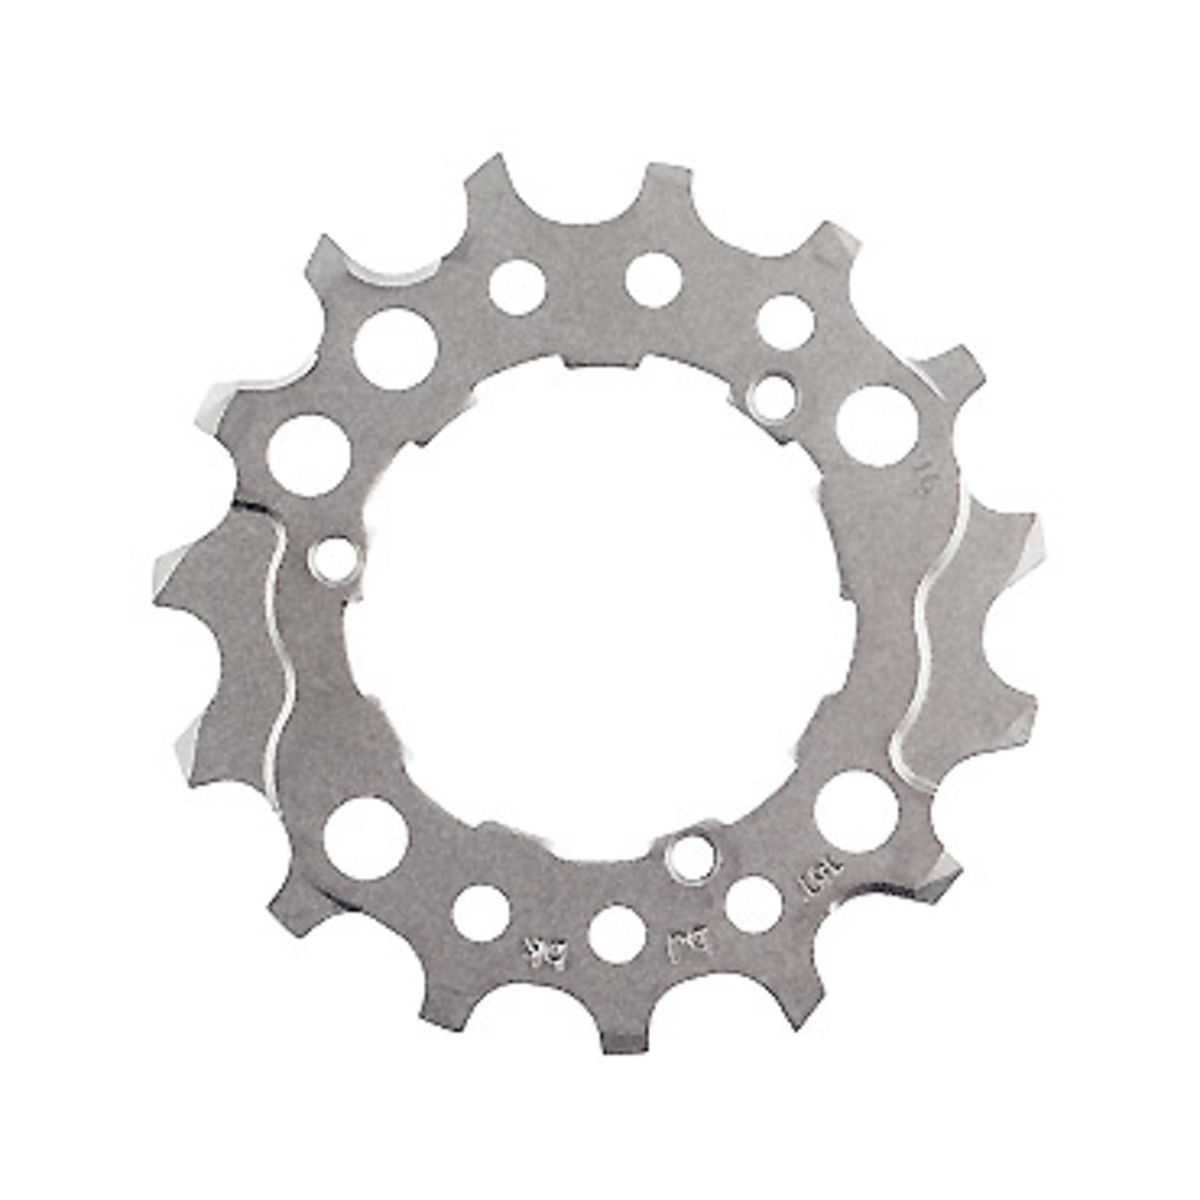 XTR CS-M980 10-speed, 15-tooth replacement sprocket